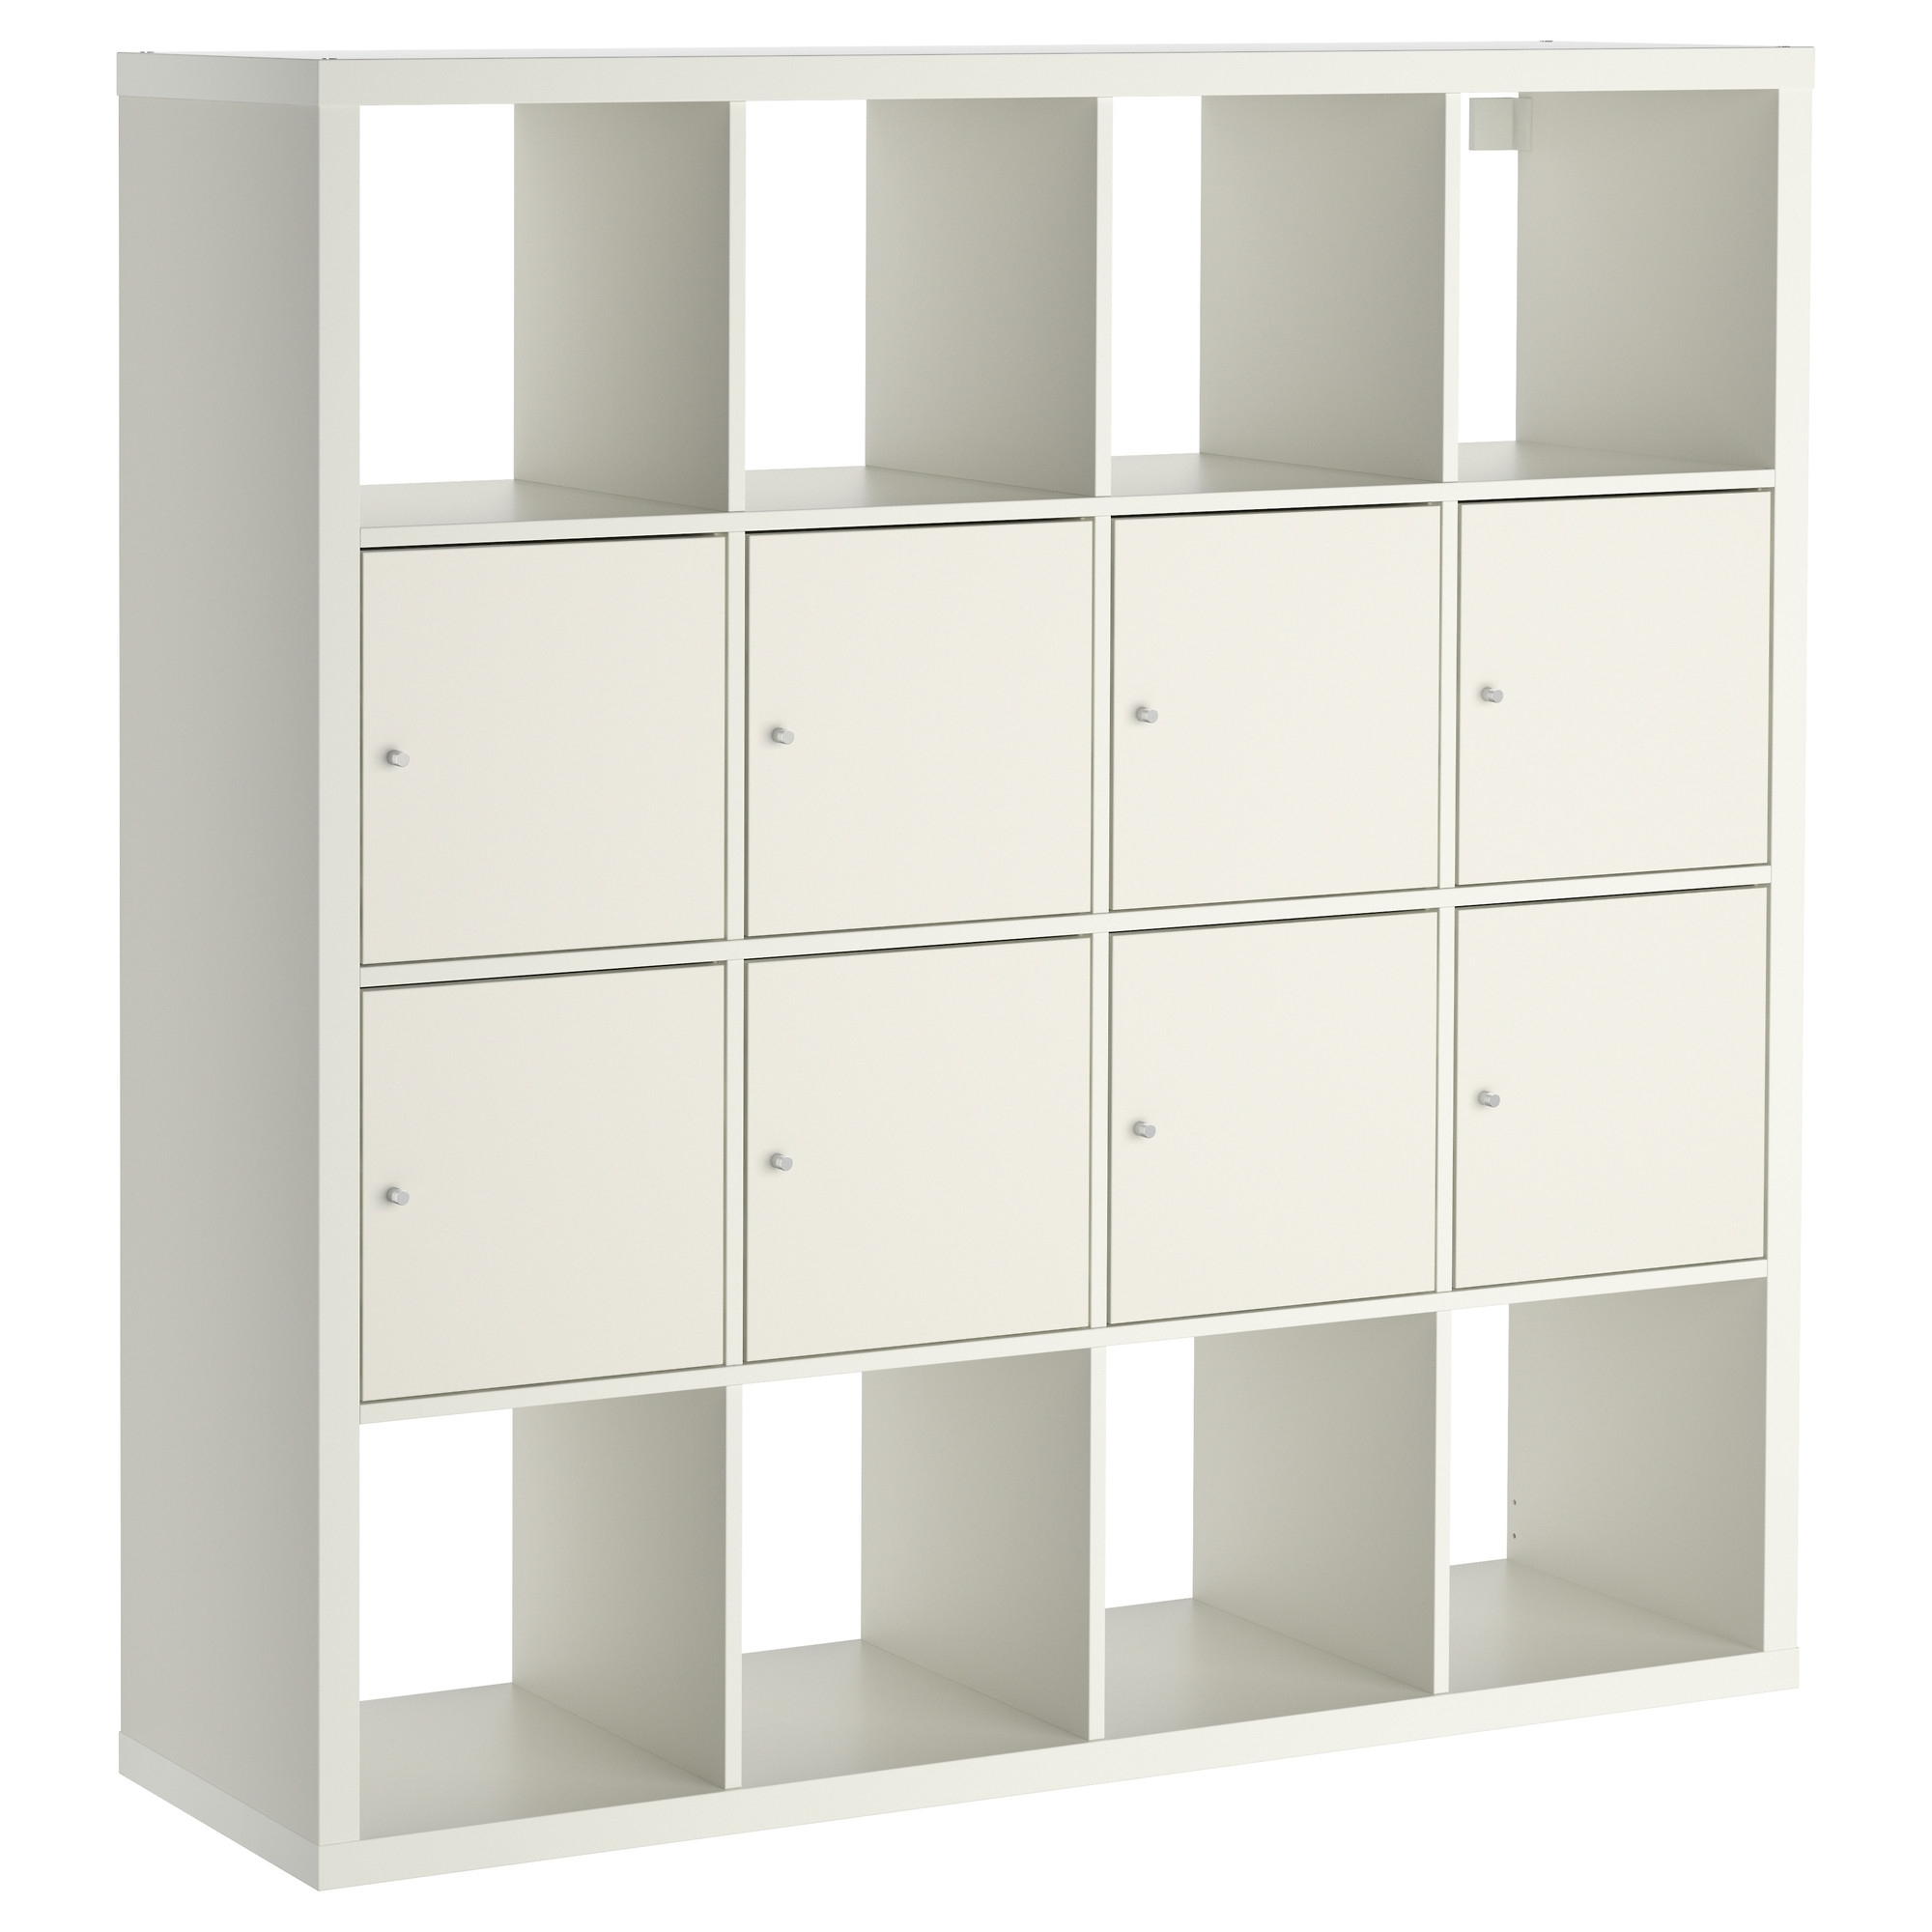 Kallax Shelf Unit With 8 Inserts – Birch Effect, 147x147 Cm – Ikea Pertaining To Current Ikea Cube Bookcases (View 5 of 15)